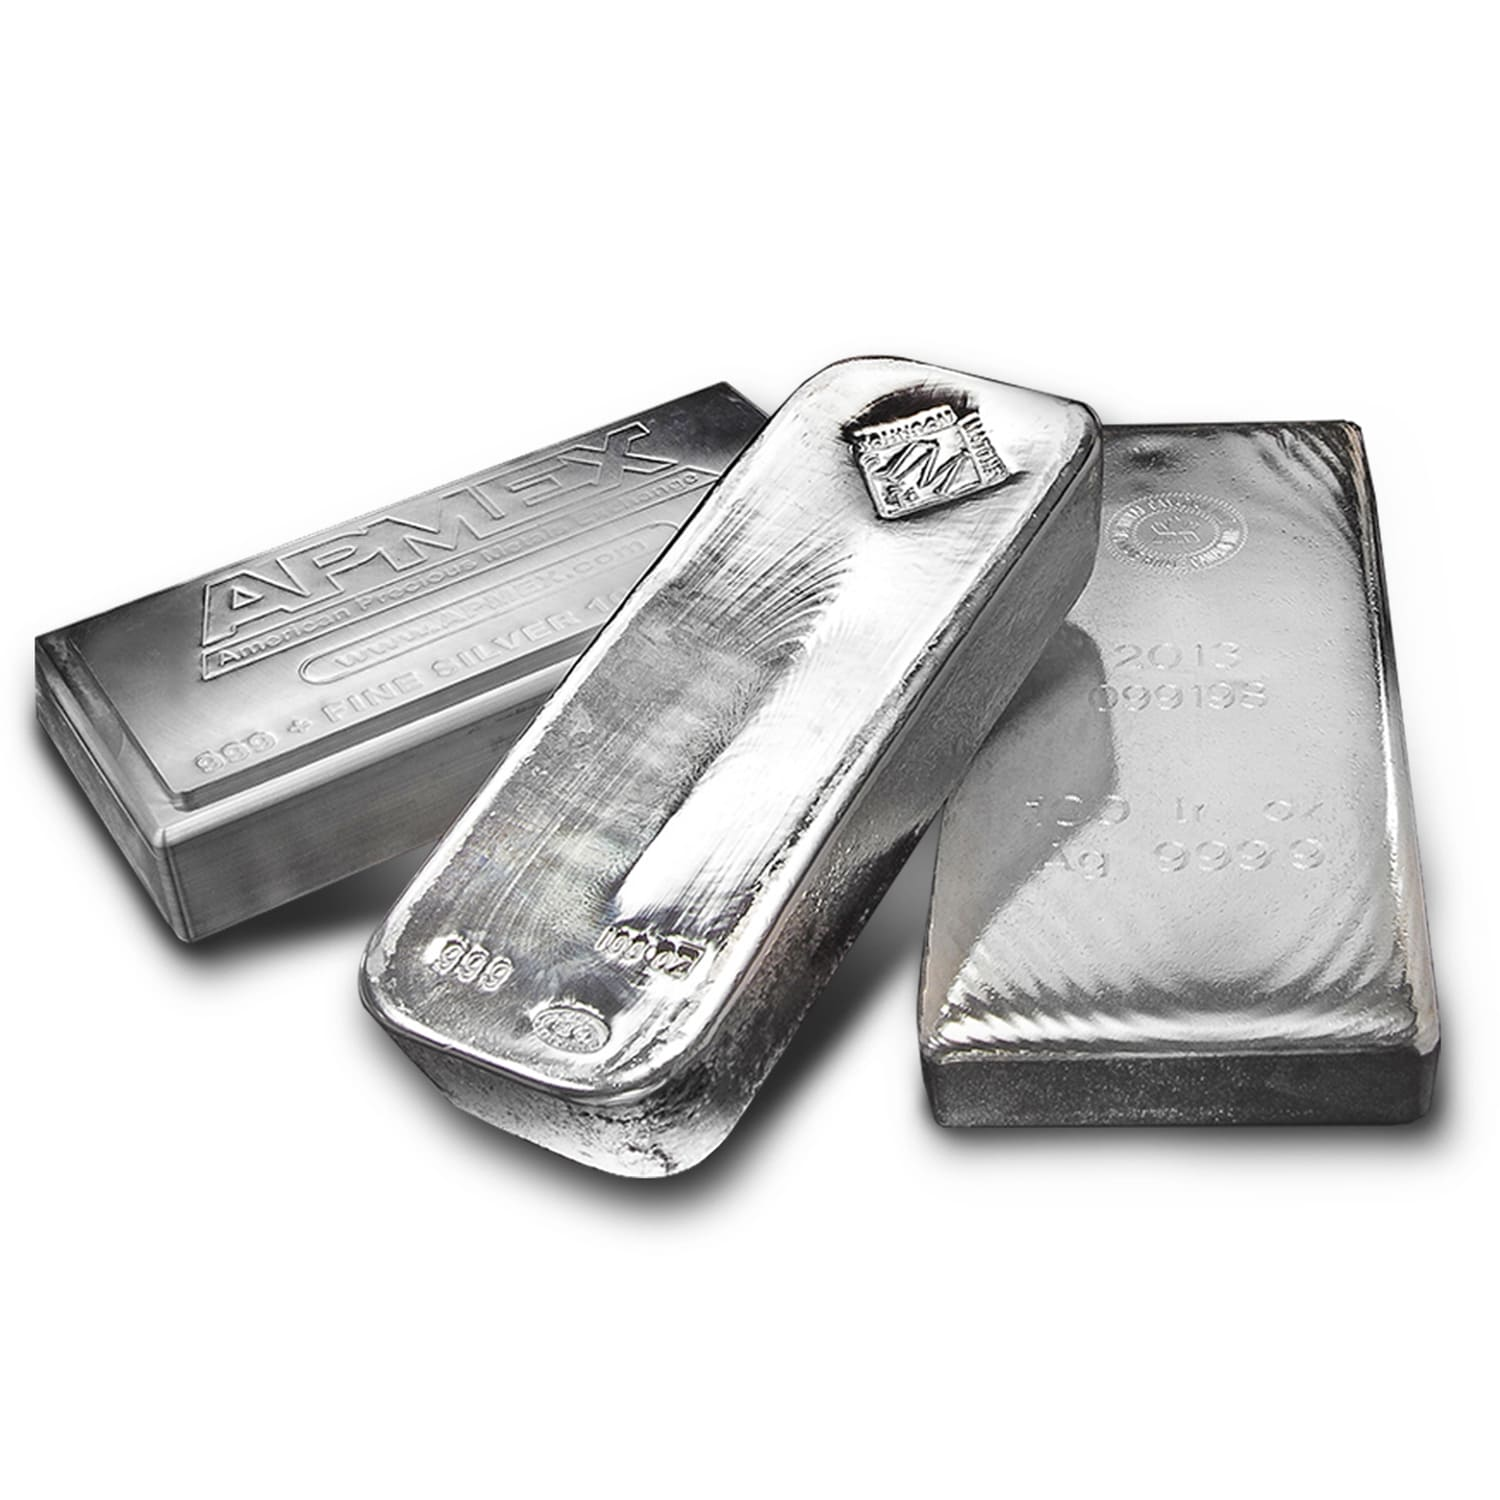 97.00 oz Silver Bars - Secondary Market